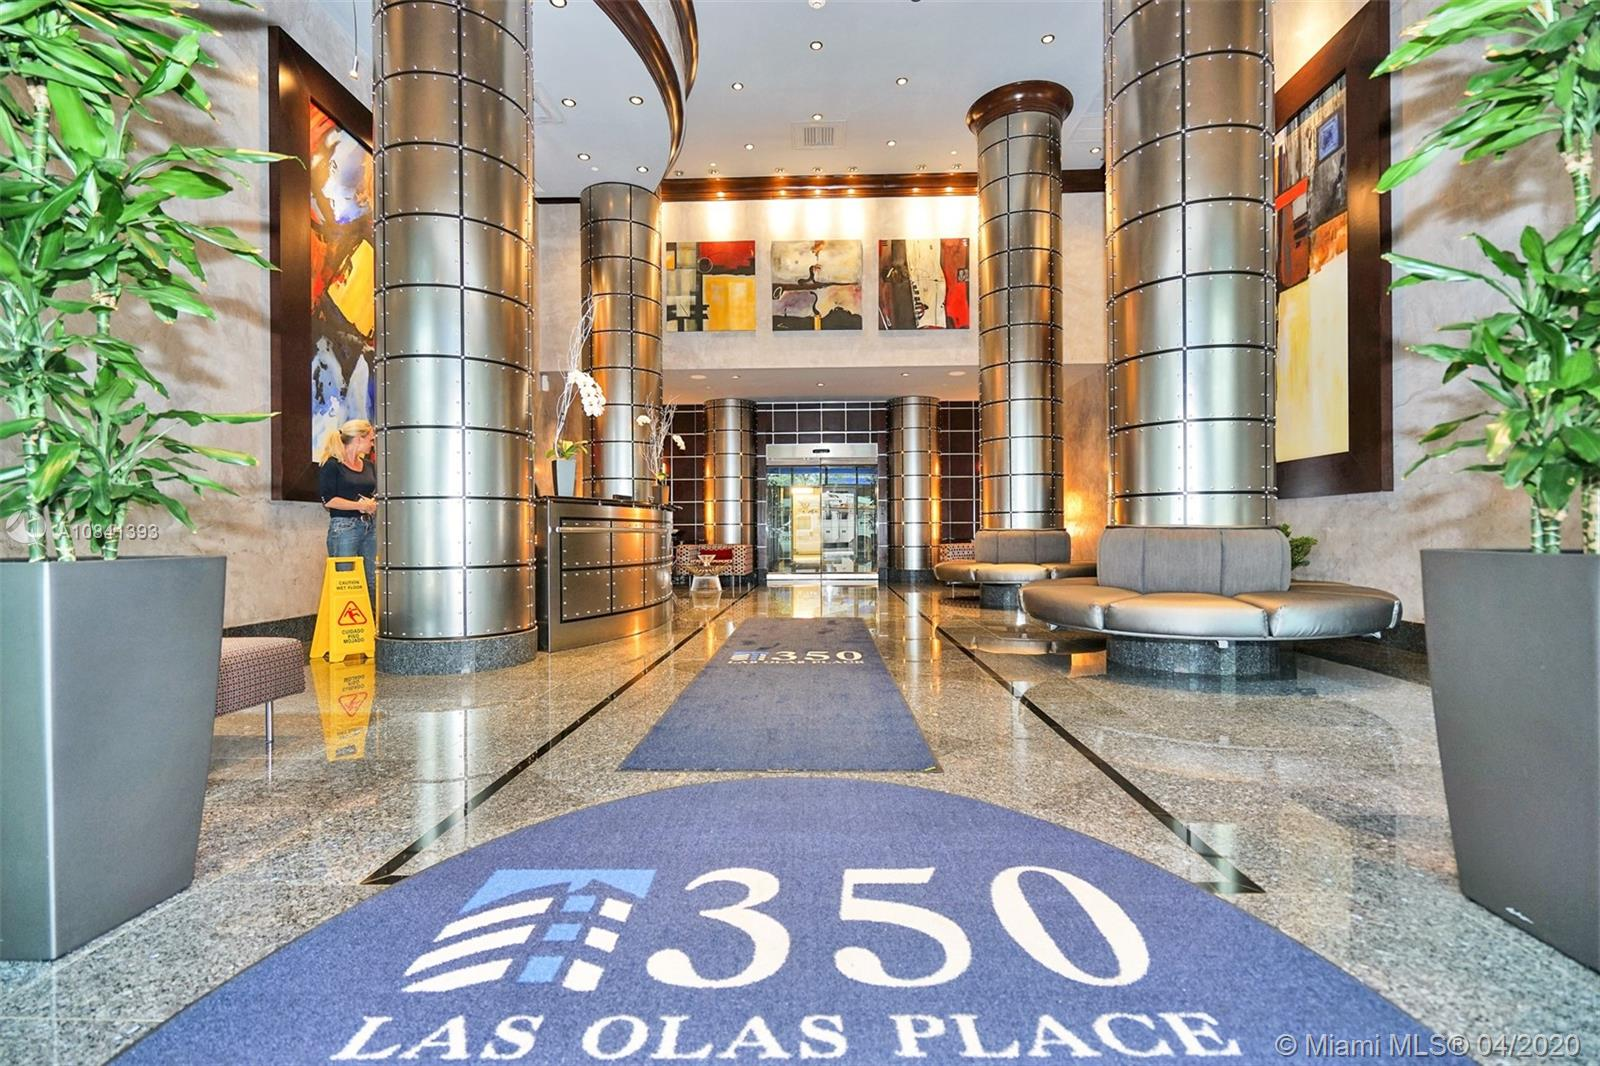 Live in the heart of Downtown Las Olas.  Walking distance to restaurants, shops, night life and beaches.  Freshly painted unit, bamboo flooring in living area and carpet in bedroom.  Marble bathroom with roman tub/shower enclosure.  Community has fabulous rooftop infinity pool, gym, business center with conference facilities, theater room,  24/7 doorman, bicycle storage, wifi and upgraded cable (HBO) included.